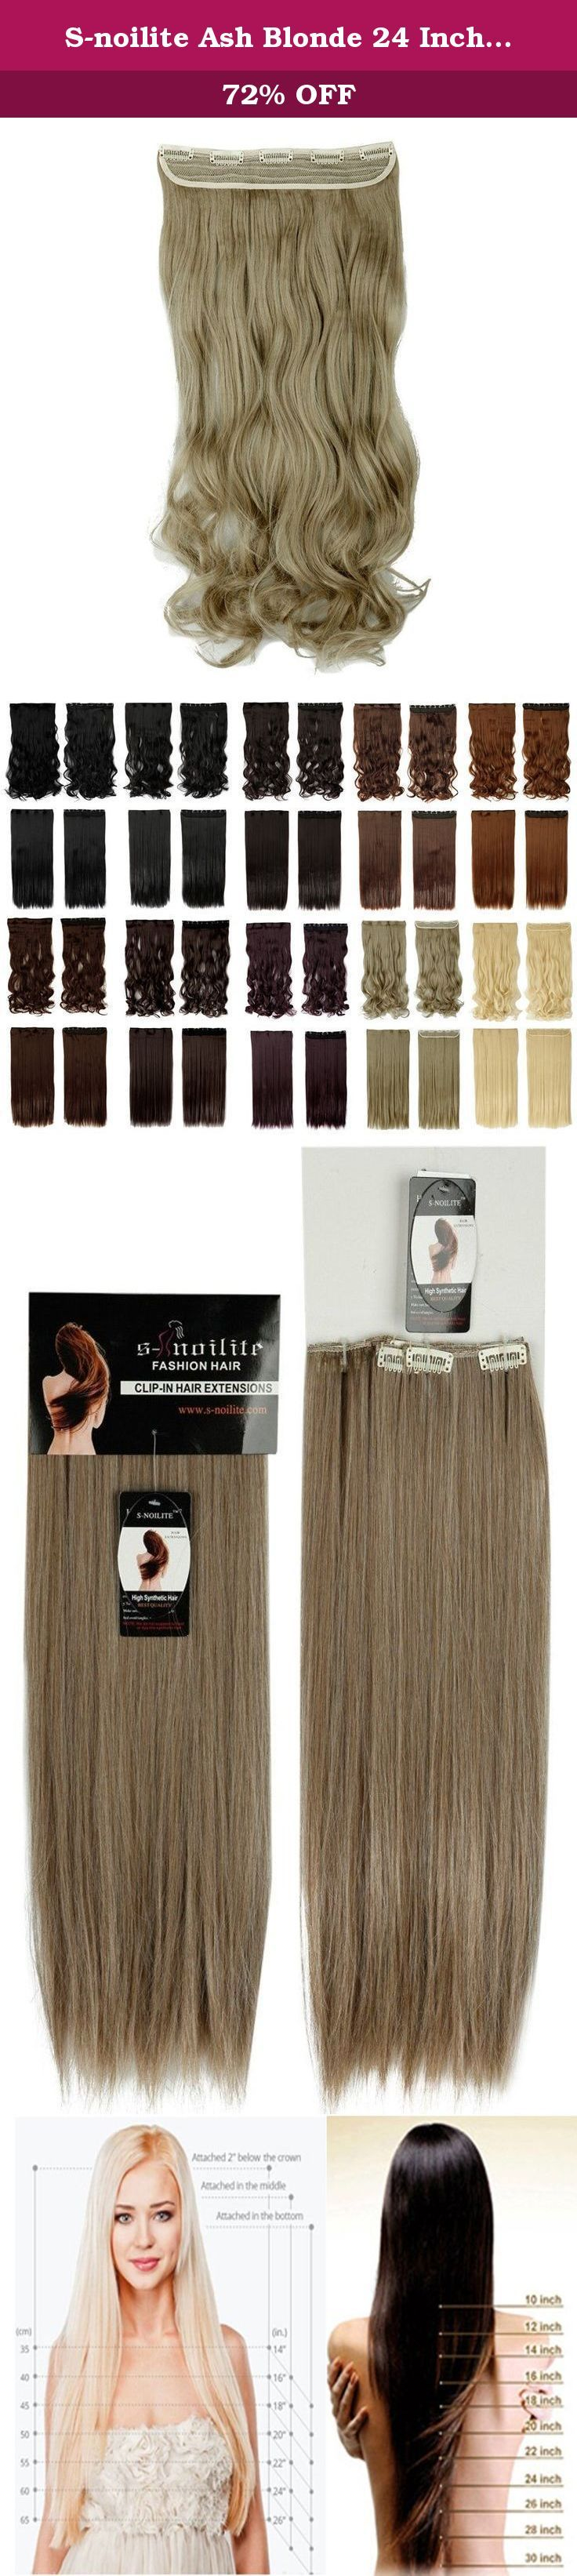 S-noilite Ash Blonde 24 Inches Curly One Piece Clip in Hair Extensions (5 Clips) Clip Ins Hairpiece for Women Lady Girl. This is a one piece clip in hair extensions made from premium synthetic fibres. There are five hair clips along the top for easy, secure and discreet attachment to your hair. You can fit them yourself in the mirror, and have them in and a new style ready to go in minutes. This item is ideal for adding a little volume or length to your current style, and one weft is…